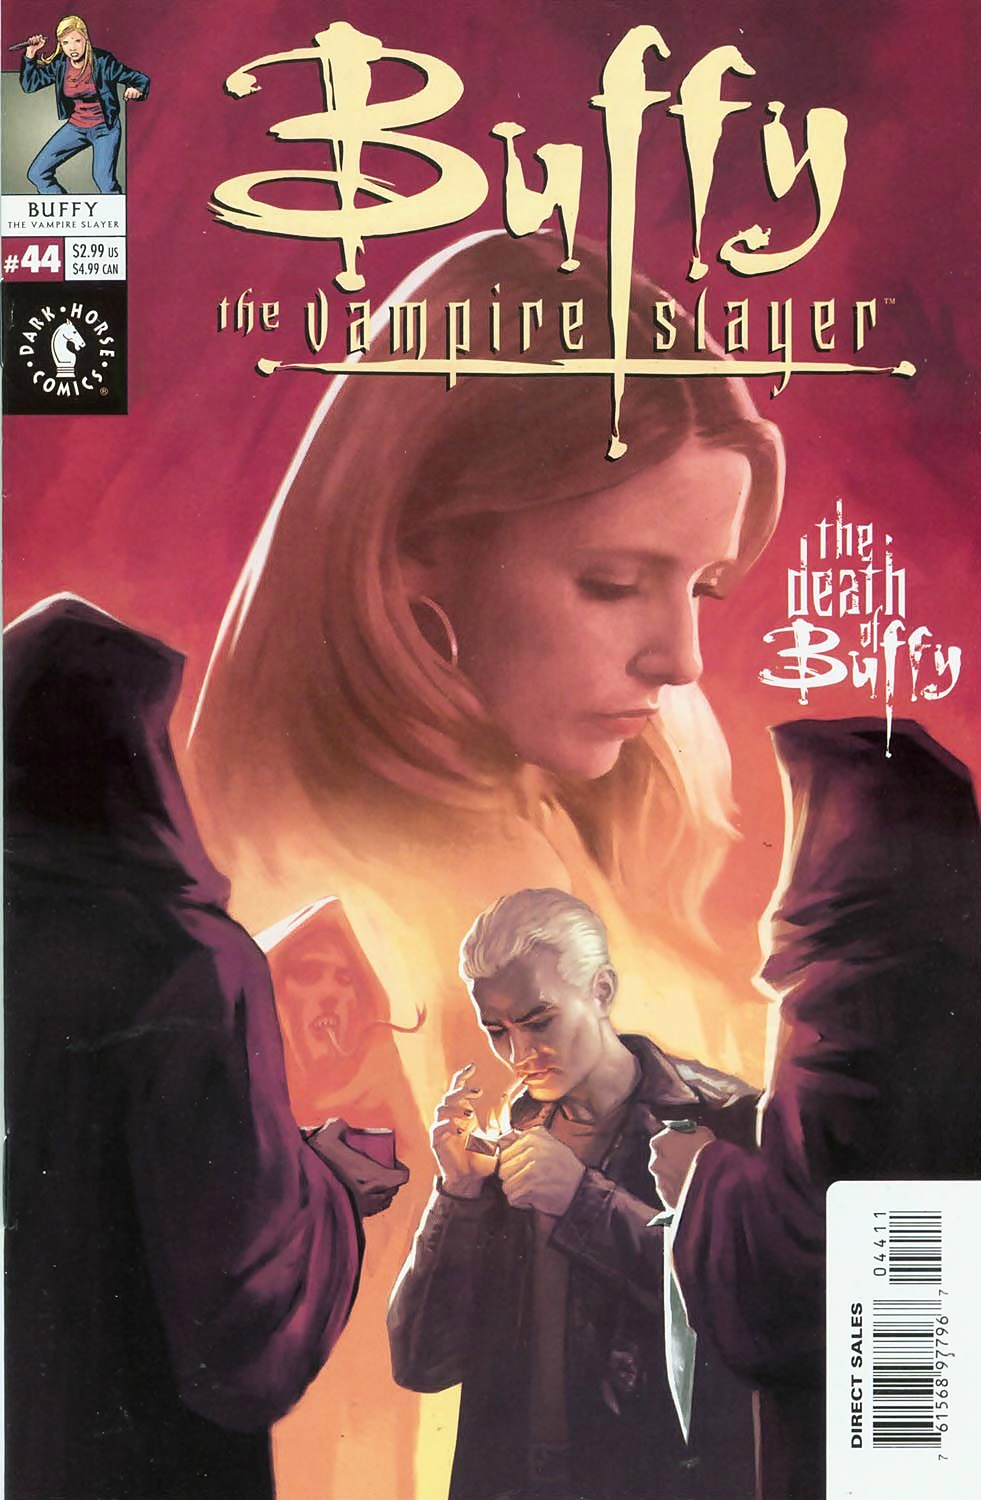 The Death of Buffy, Part Two